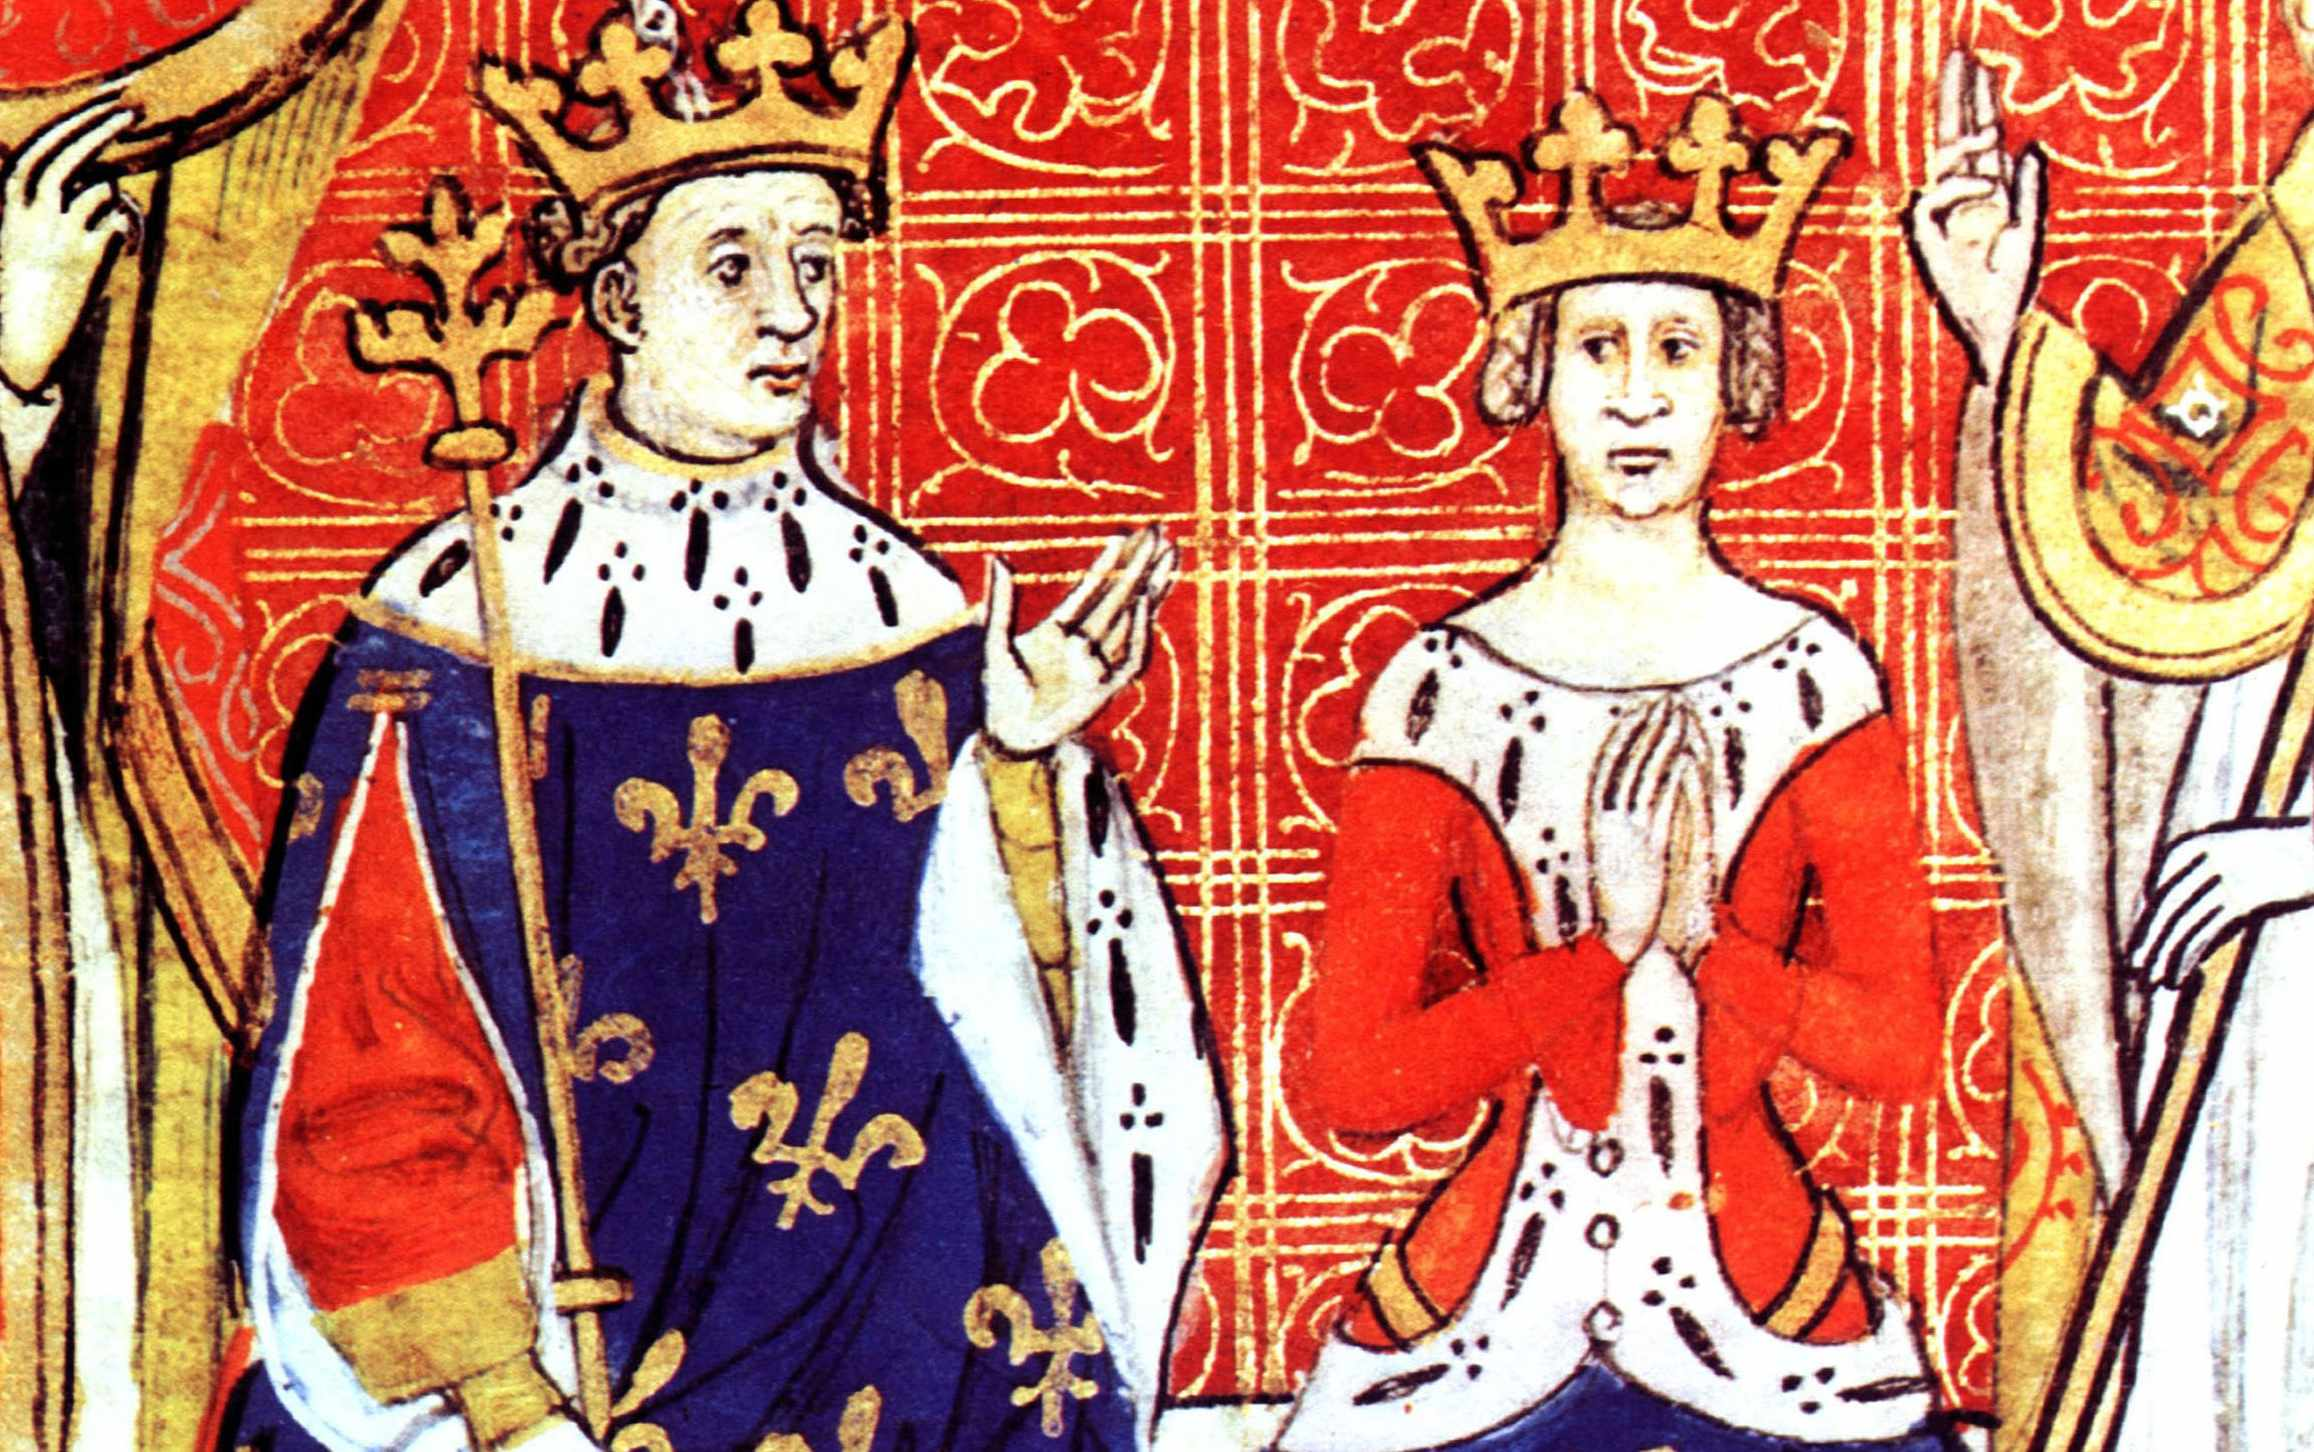 Painting of Louis VIII and Blanche of Castille